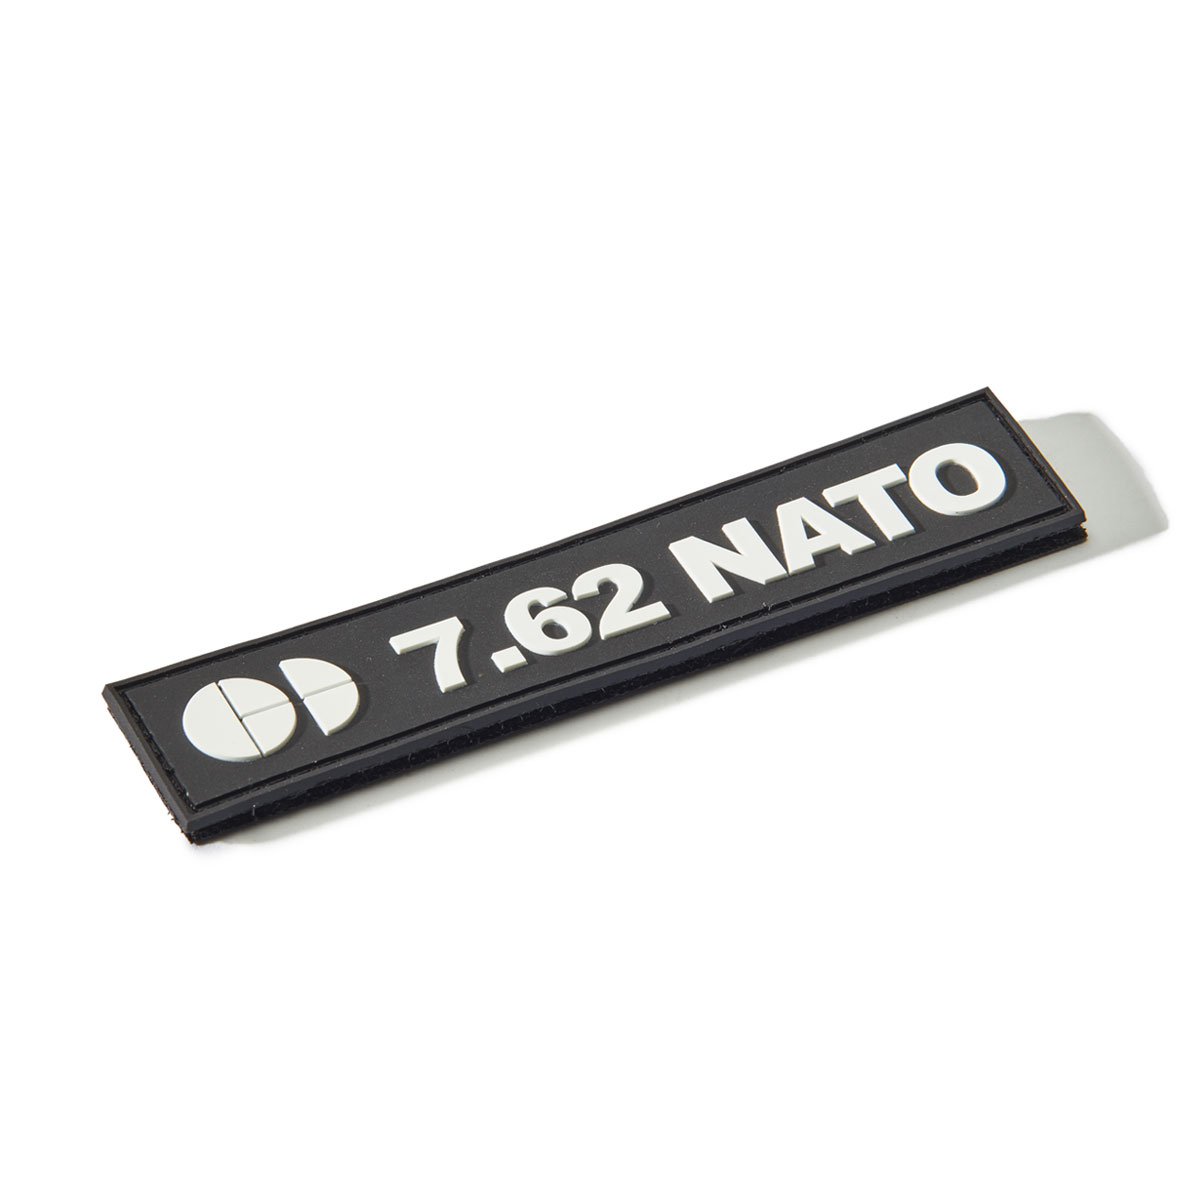 Cloud Defensive Ammo Patch 7.62 NATO Angle